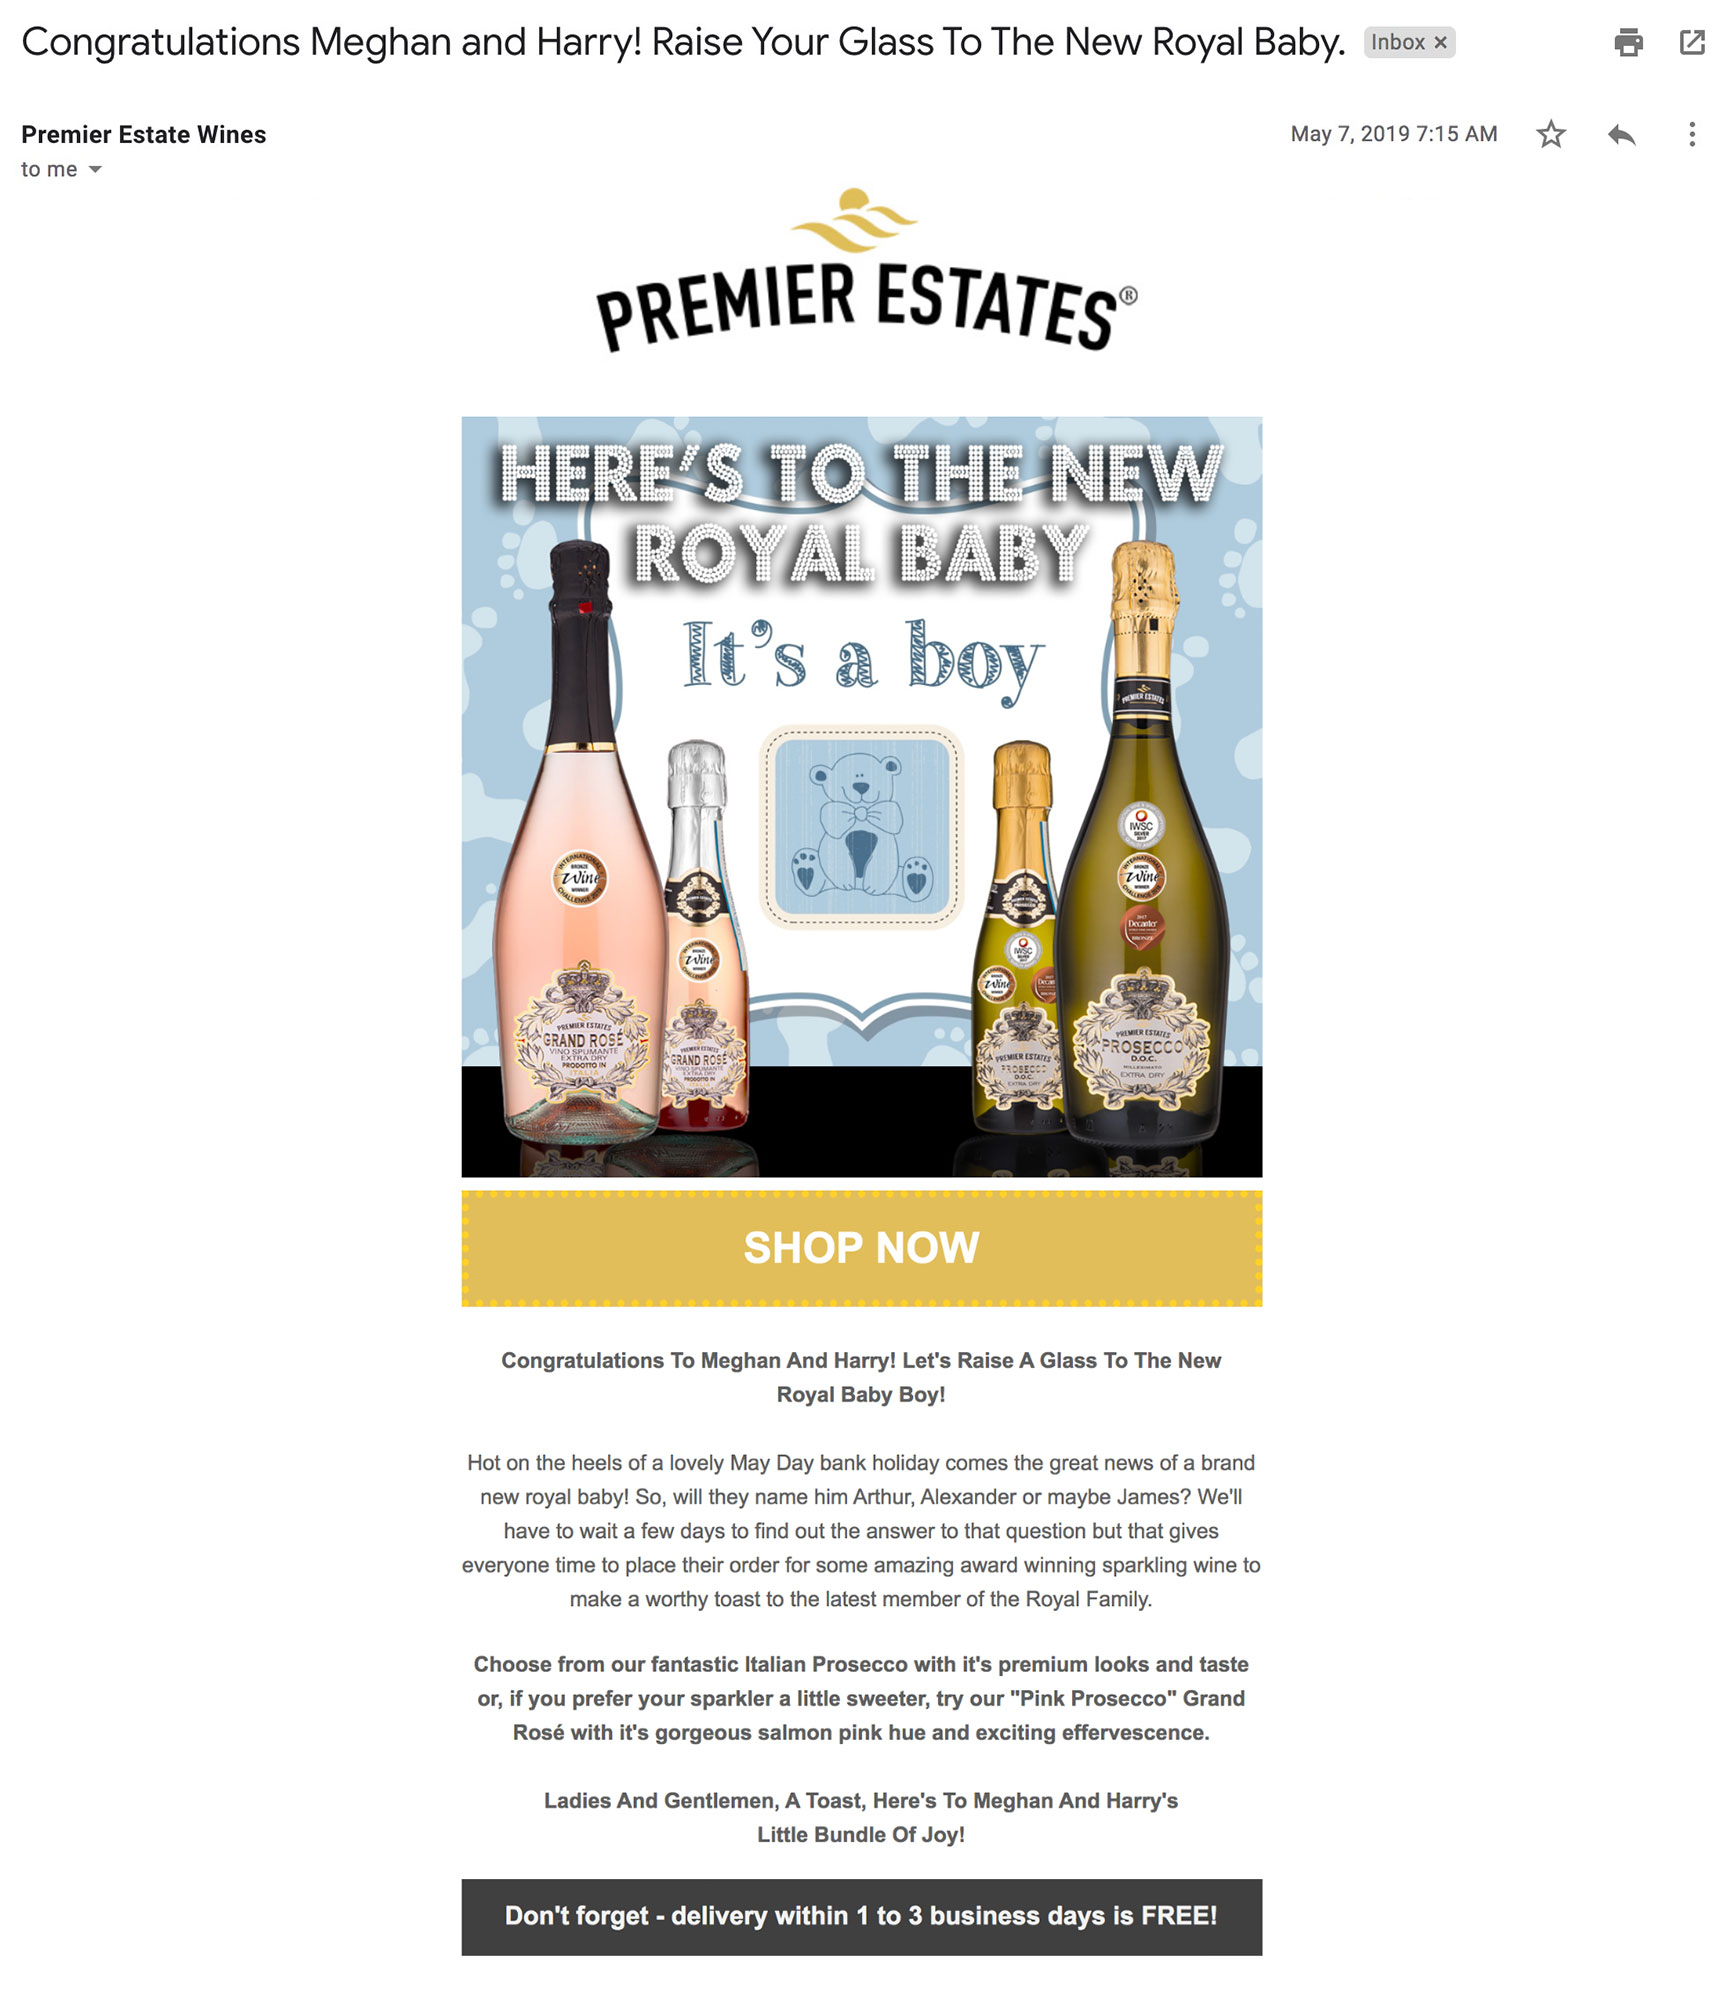 Premier Estates Wines ties into the birth of the royal baby.